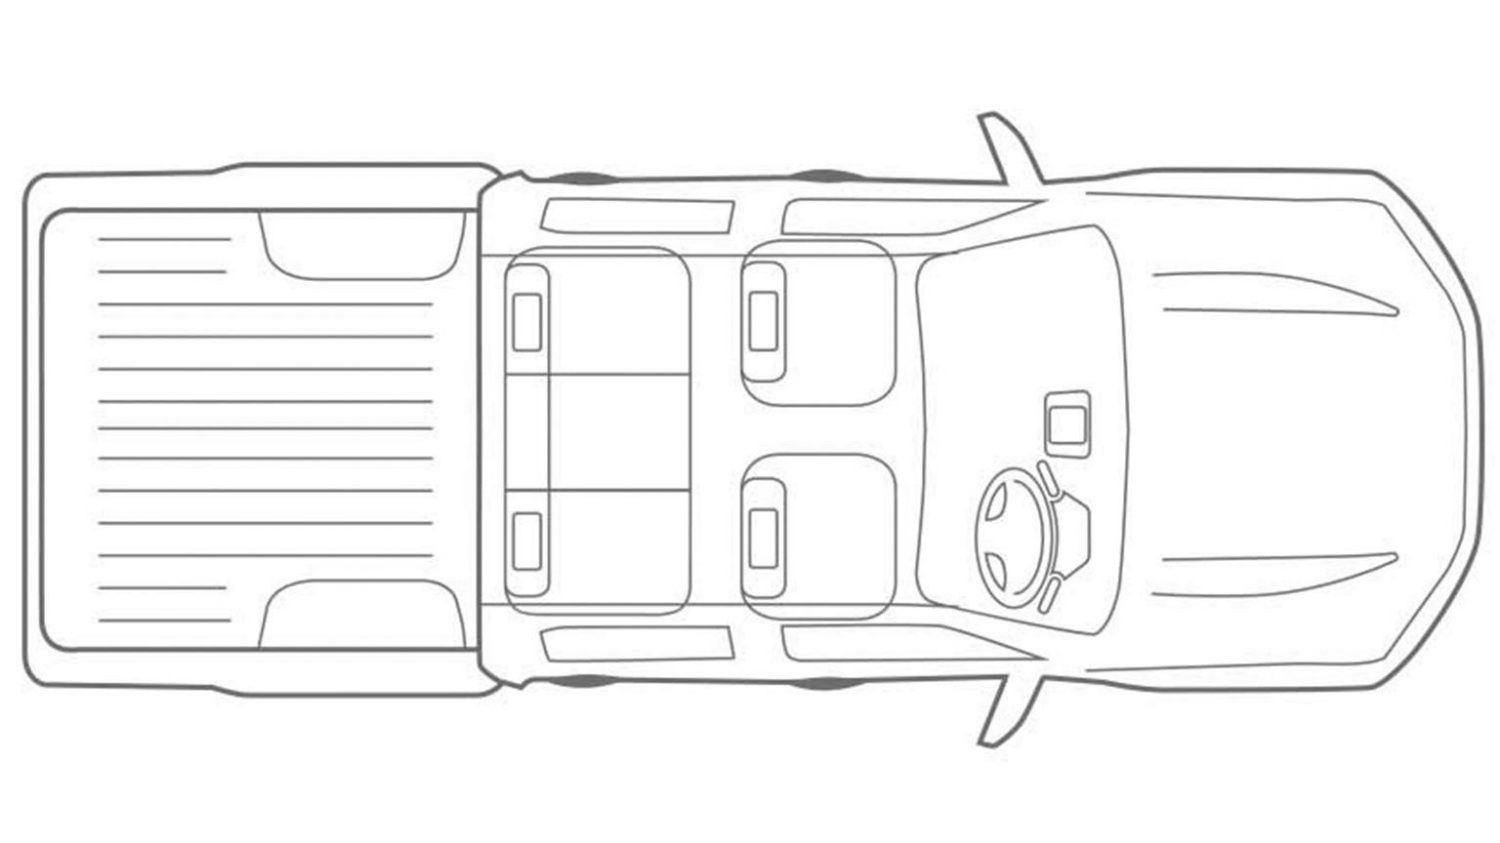 Nissan Navara - Overhead vehicle illustration